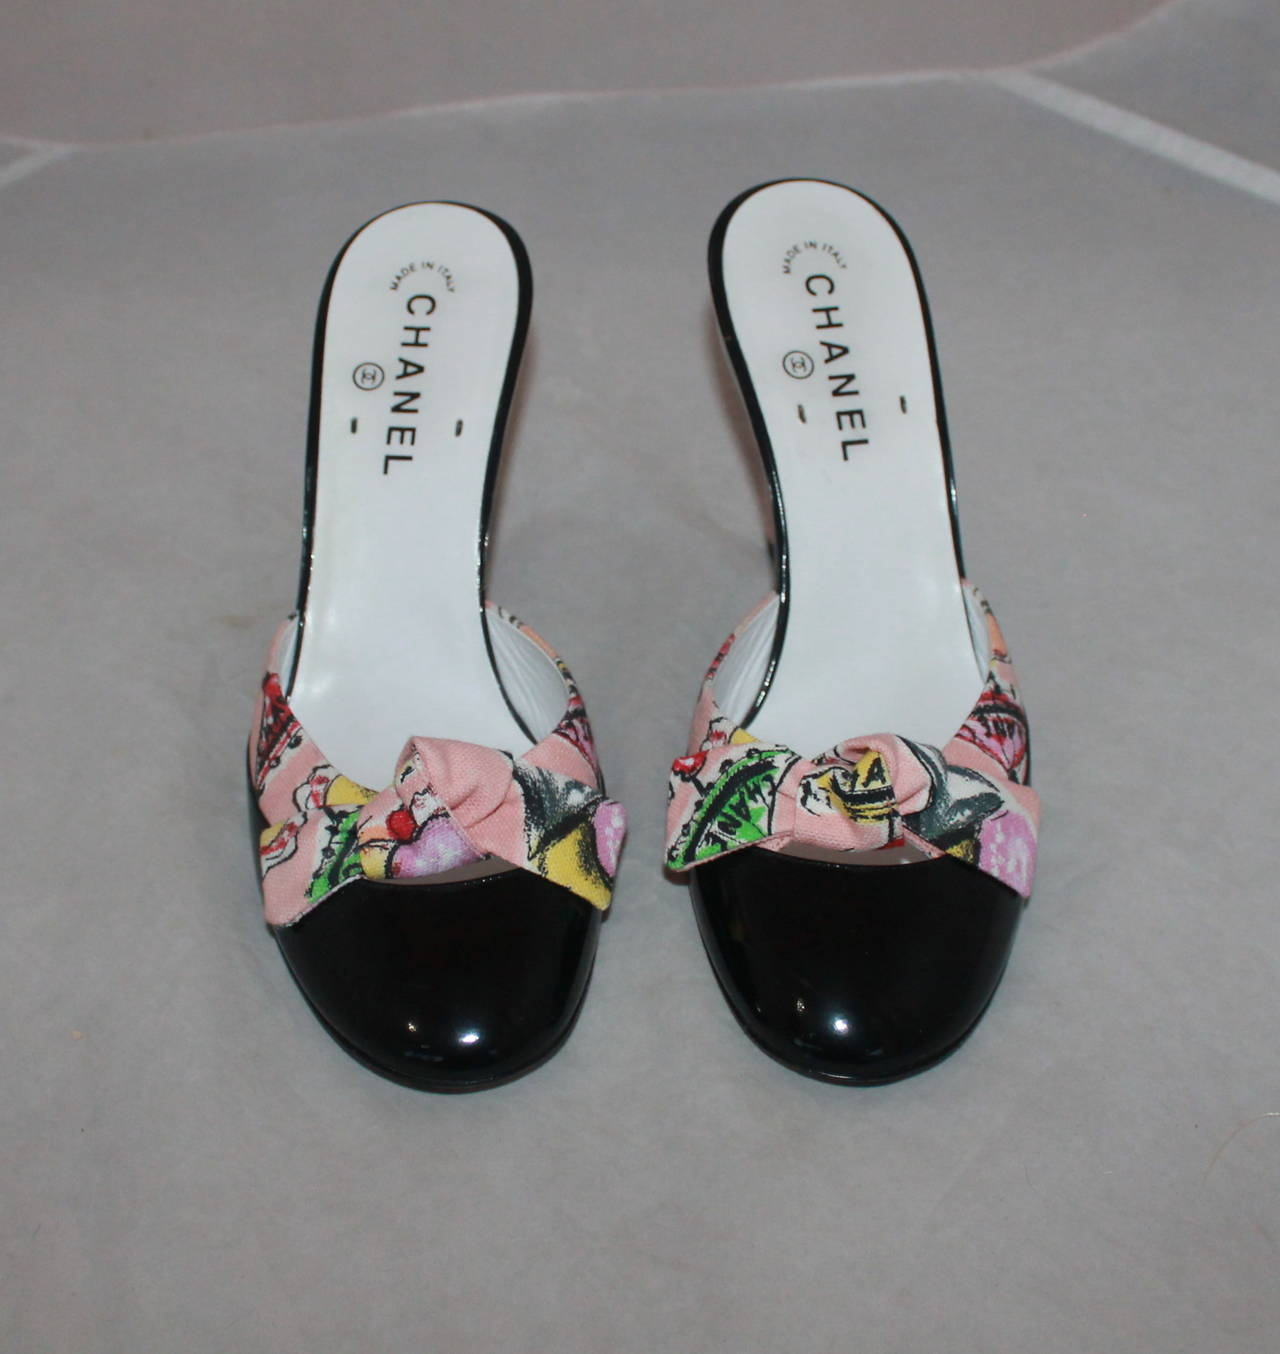 Chanel Fabric Beach Print & Black Patent Heel with Bow - 40 In Excellent Condition For Sale In Palm Beach, FL